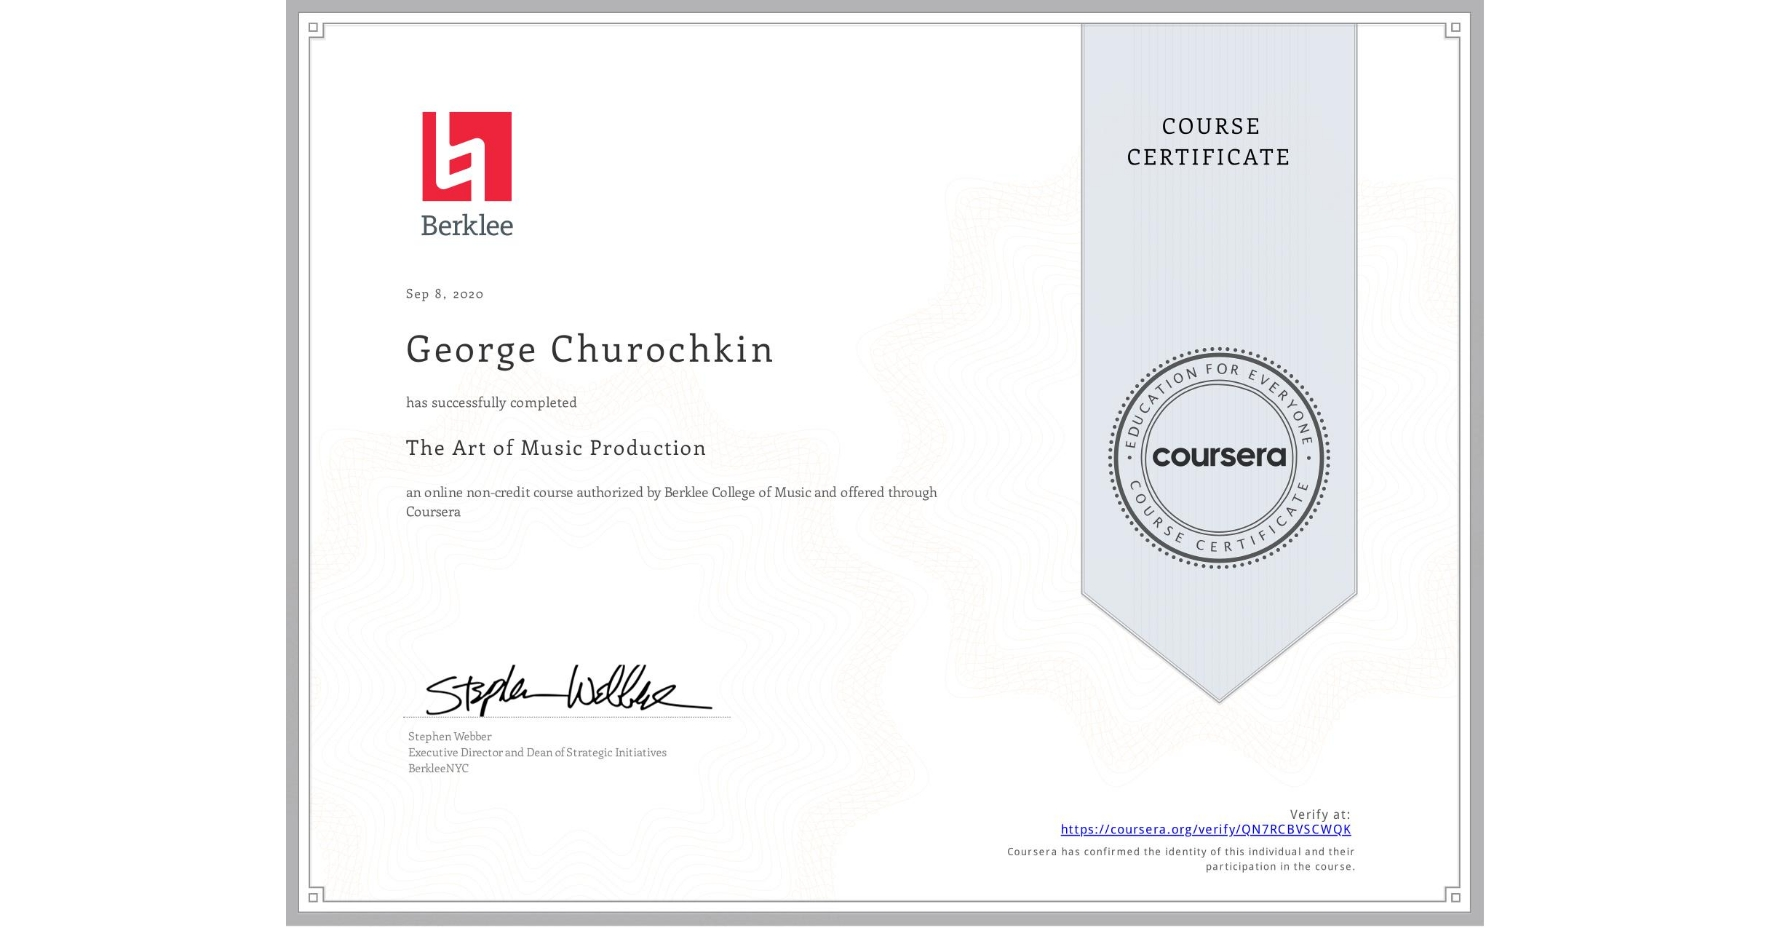 View certificate for Георгий Чурочкин, The Art of Music Production, an online non-credit course authorized by Berklee College of Music and offered through Coursera